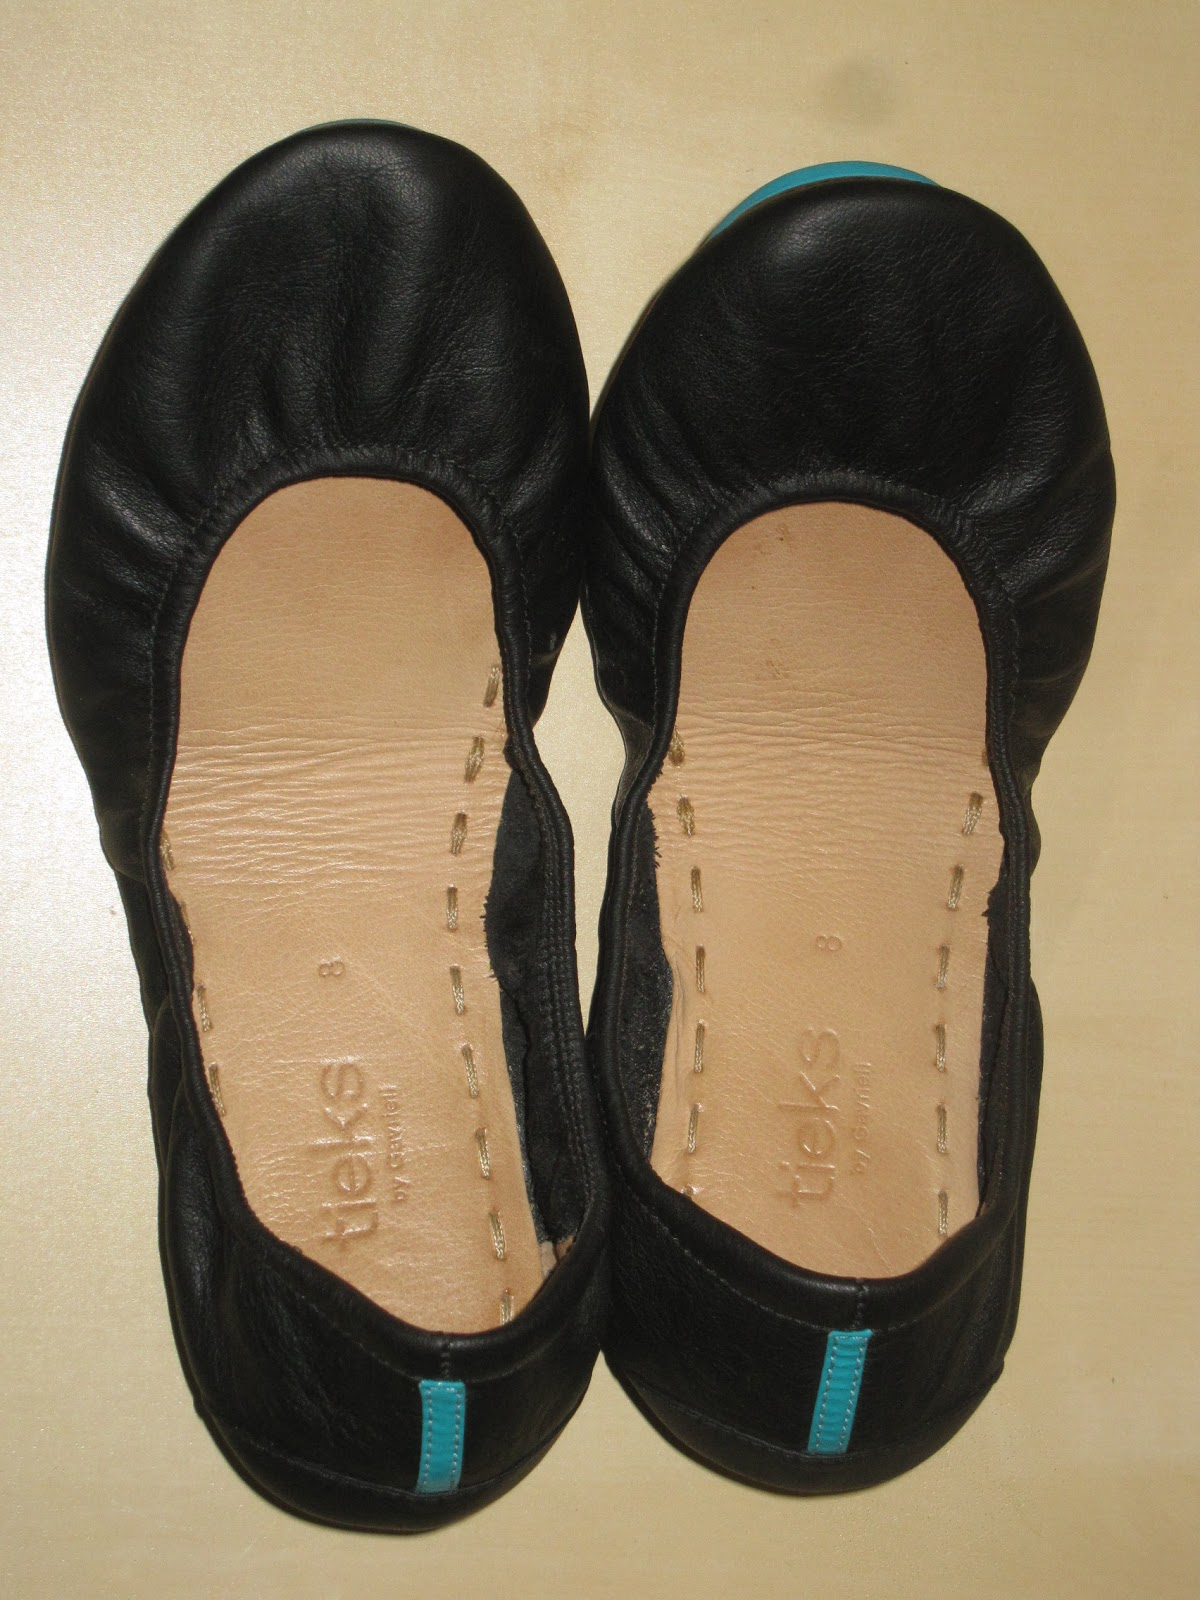 My Search for Perfect Flats Has Ended--Tieks Review